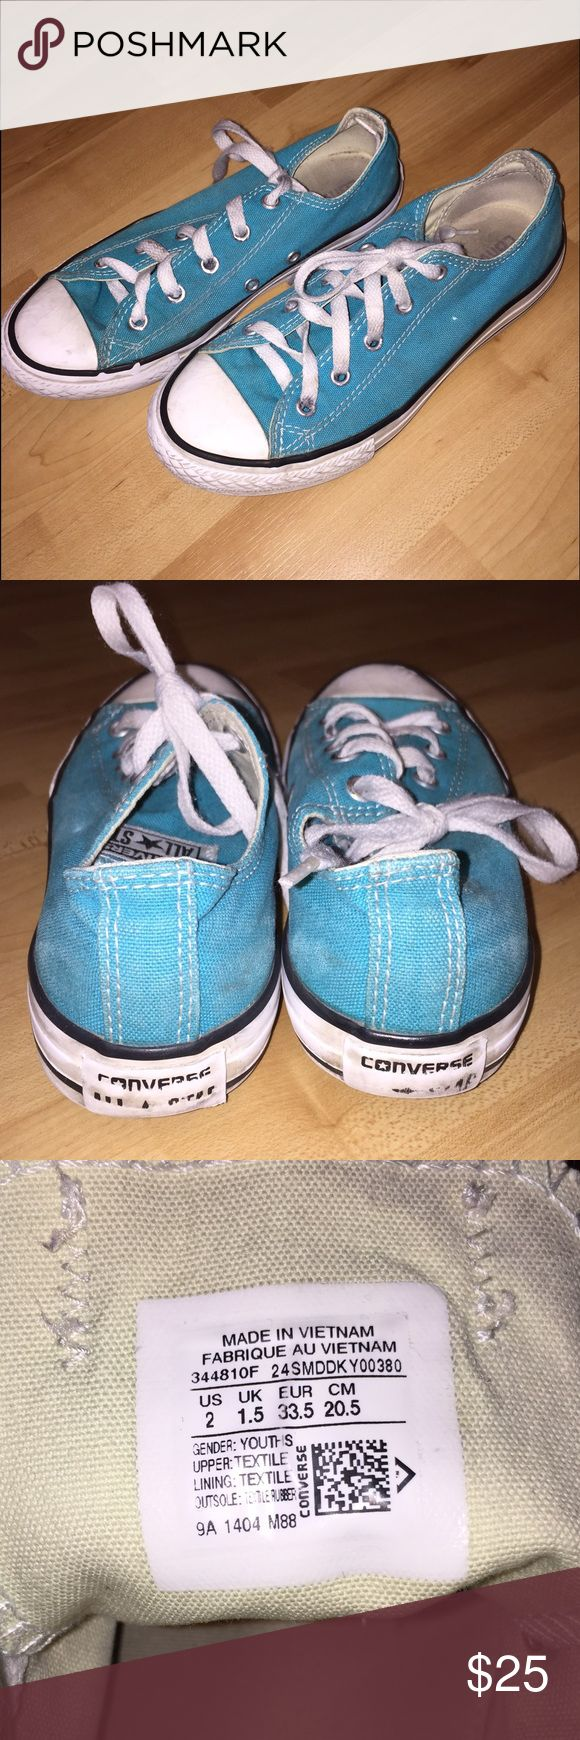 Turquoise Converse Turquoise Converse in youth size 2 but fits like a women's size 5. I have five pairs of these and they all fit me perfectly as a 5! These Chucks come preloved and in VERY GOOD condition with lots of life left. The perfect shade of blue! My prices fluctuate from time to time. Catch items when the prices are low!❤️ Converse Shoes Sneakers